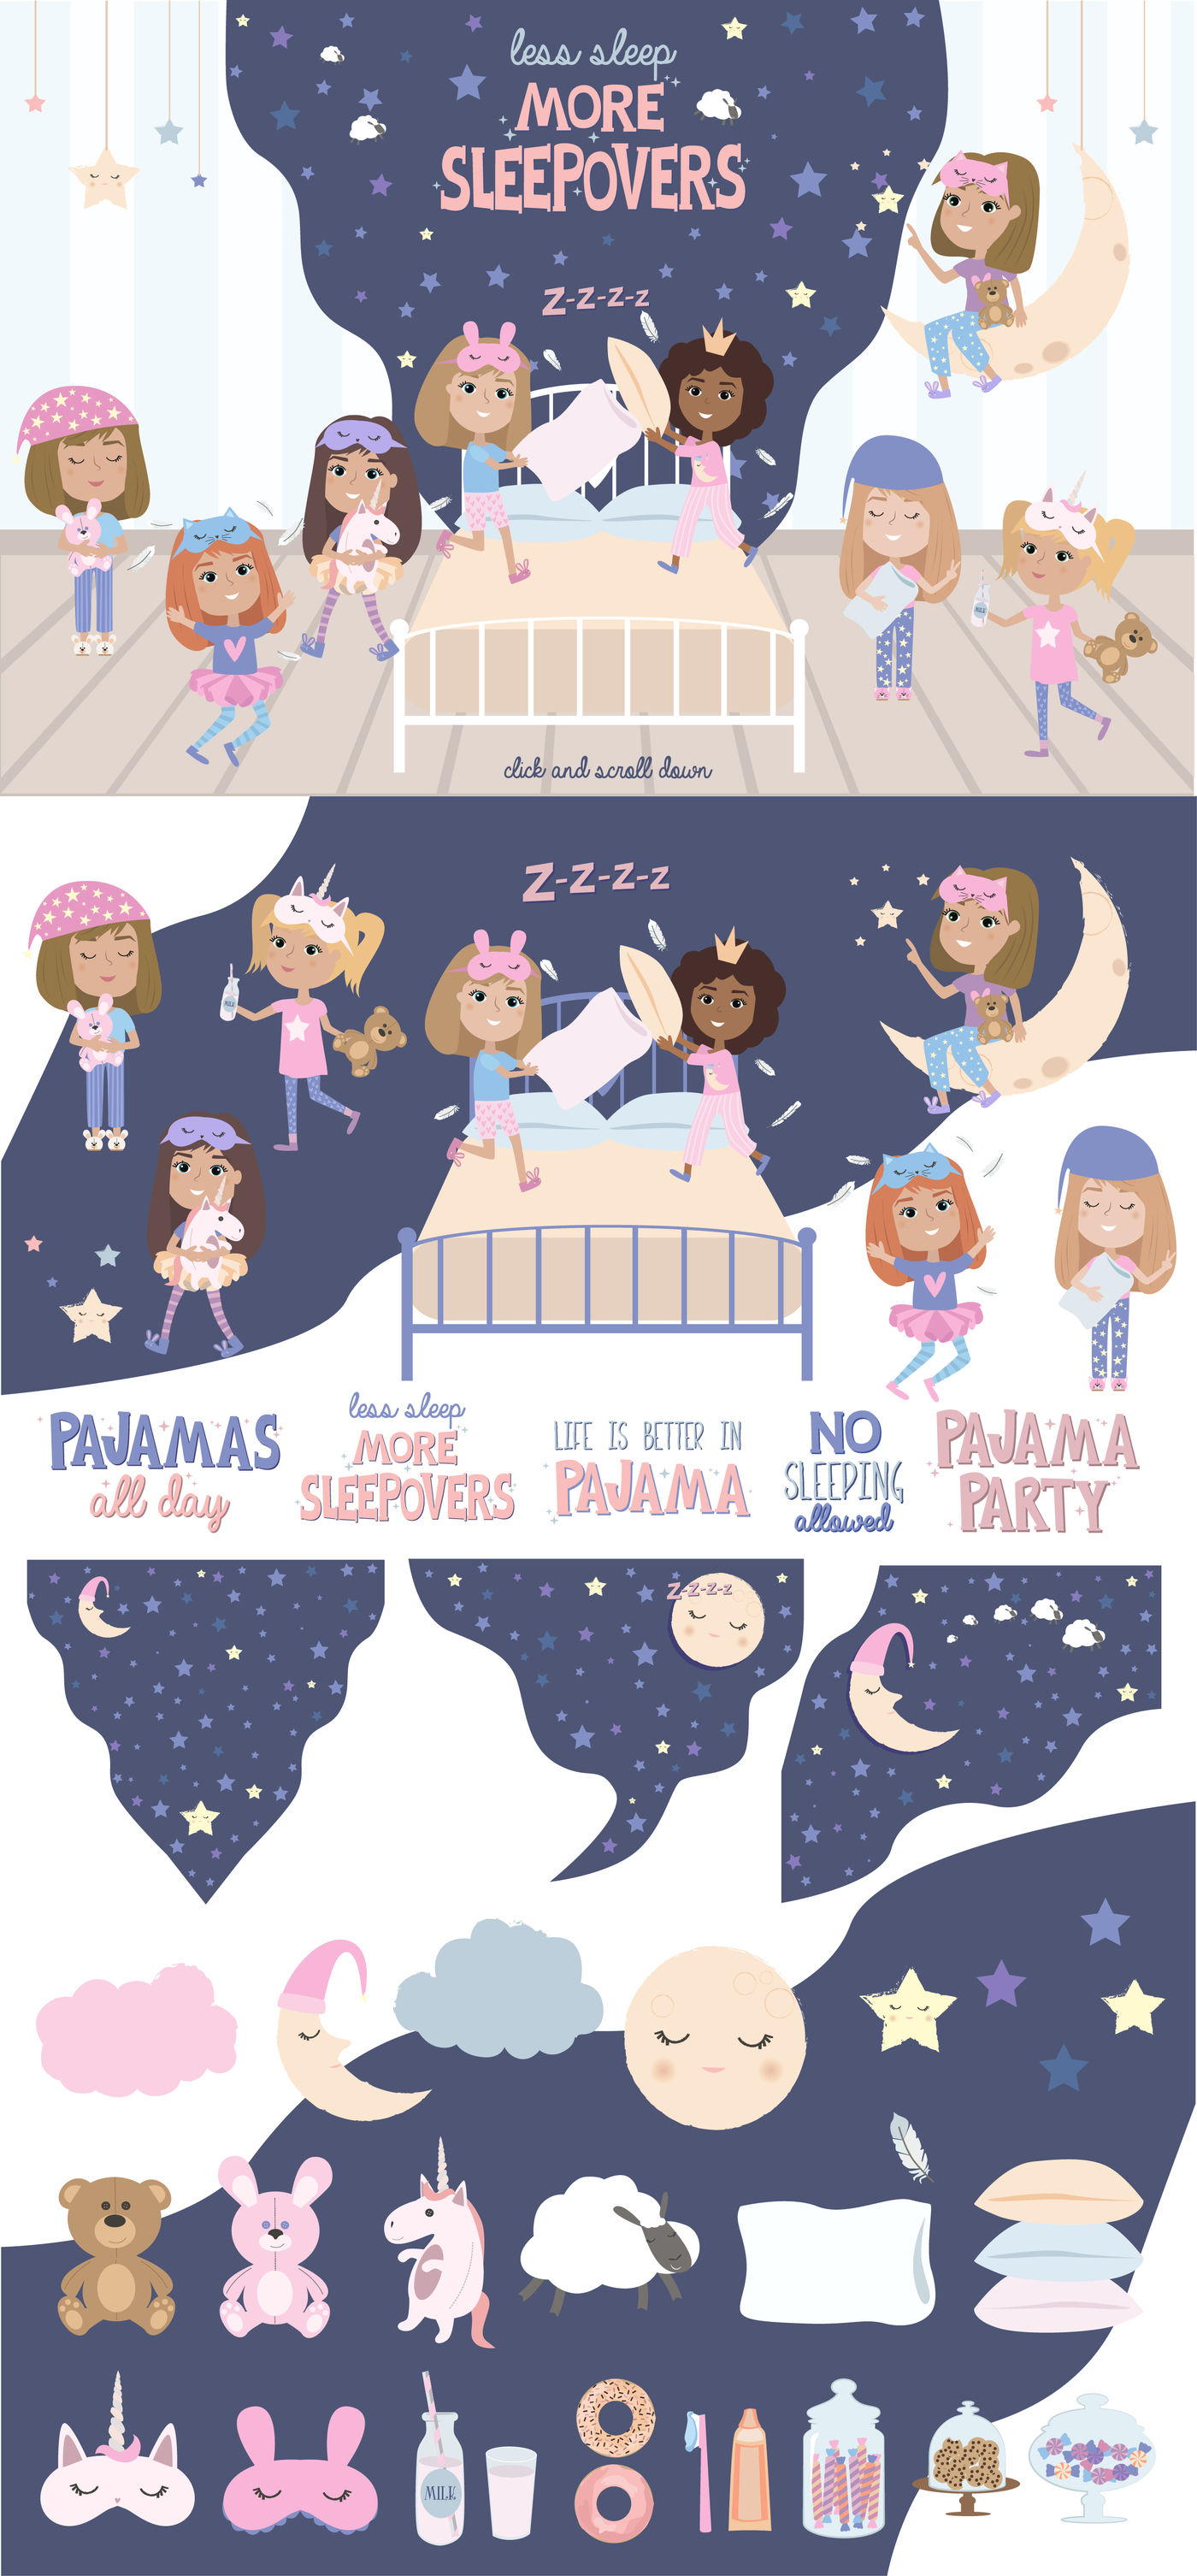 Life Is Better In Pajama By Mio Buono Thehungryjpeg Com